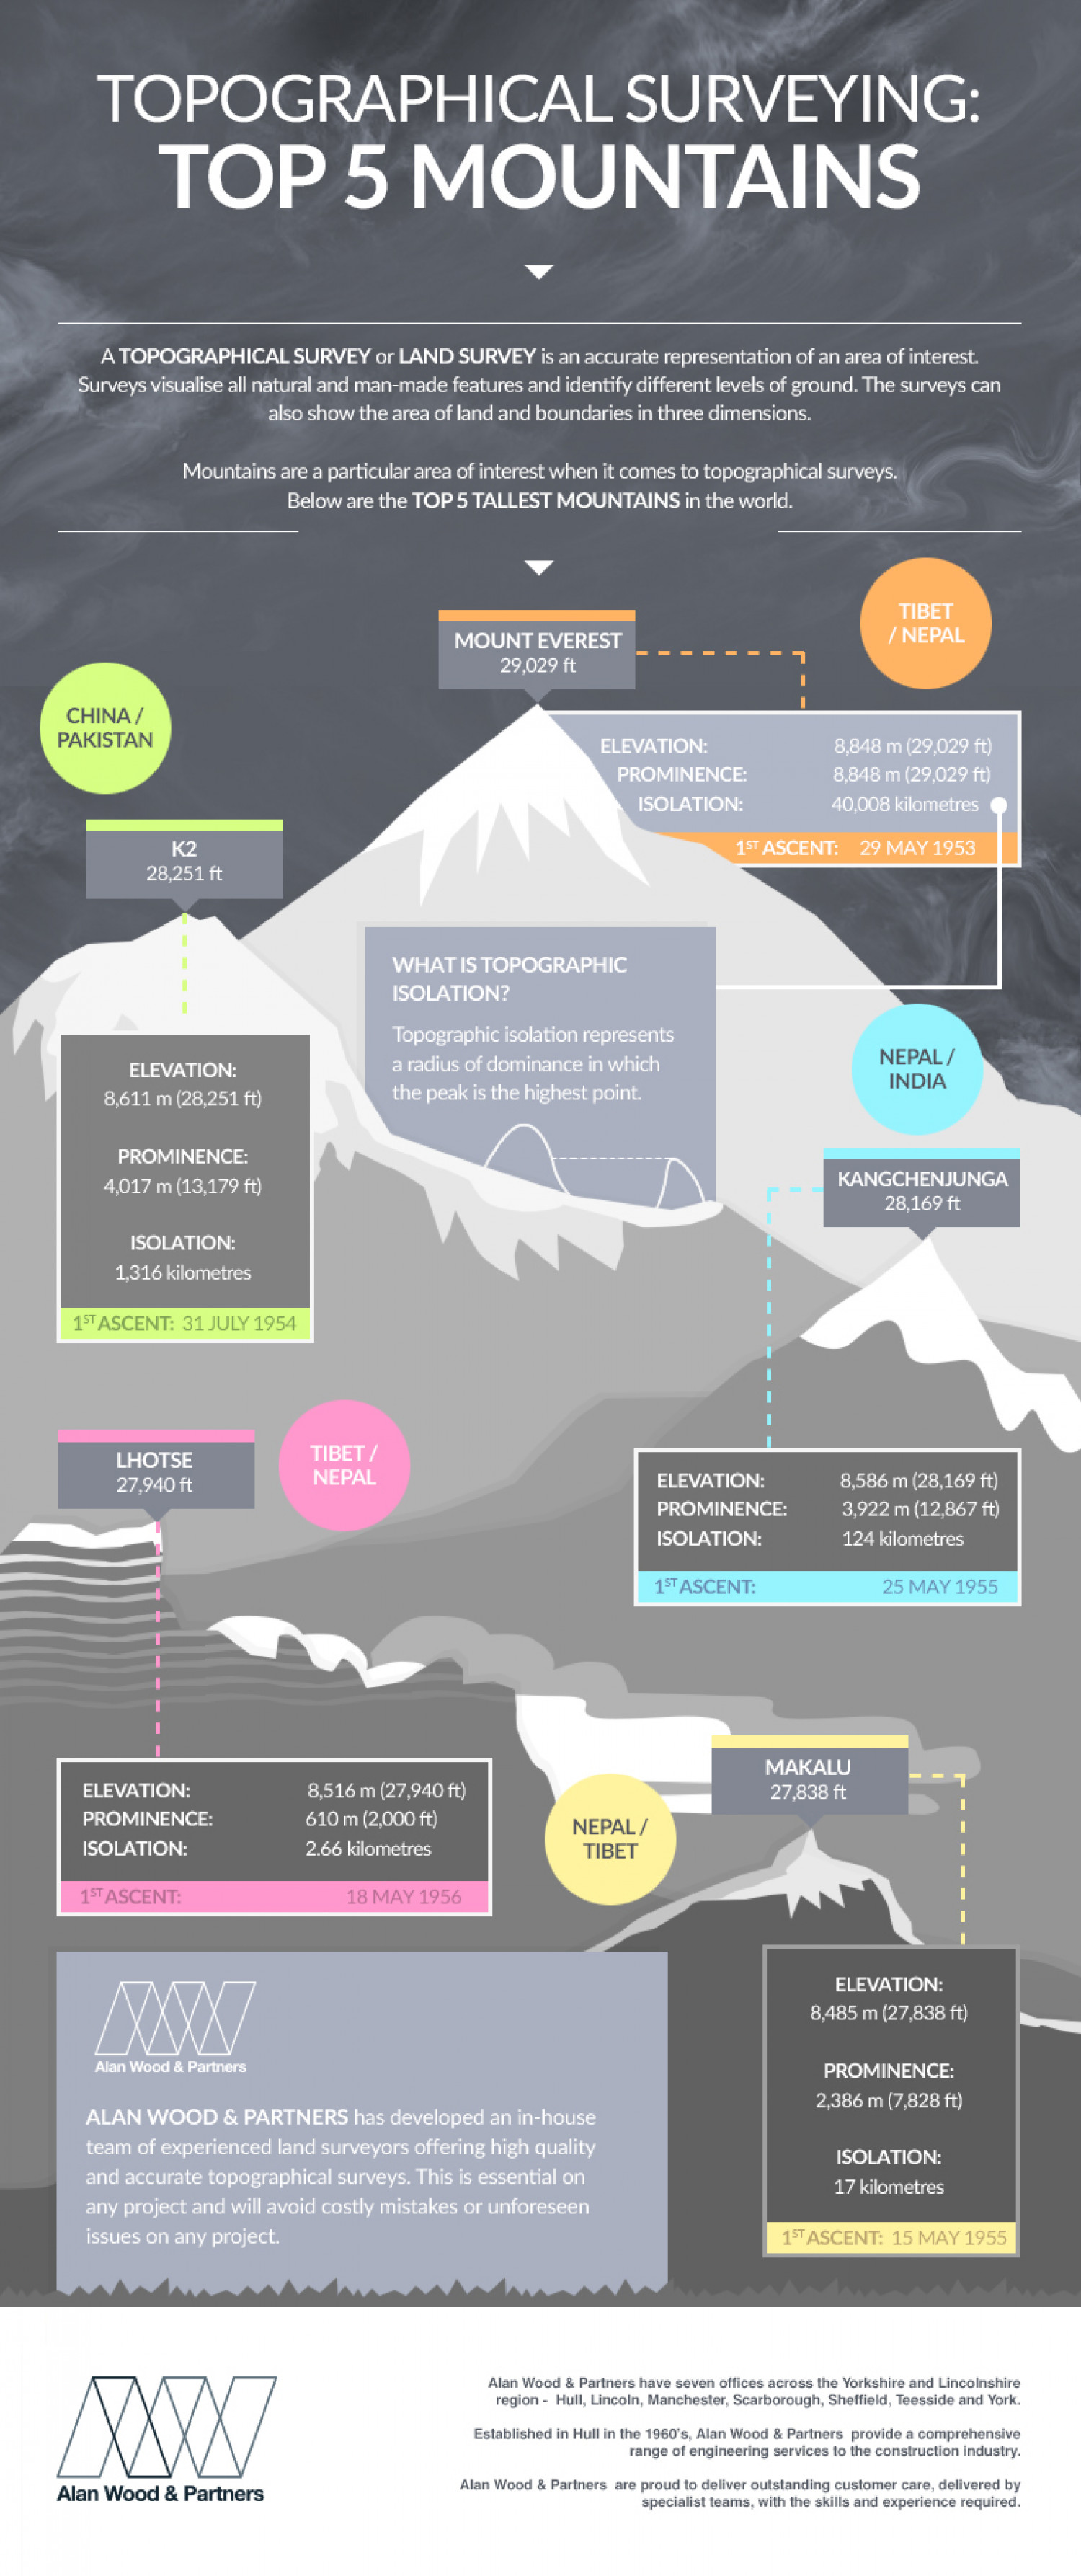 Top 5 Mountains Infographic